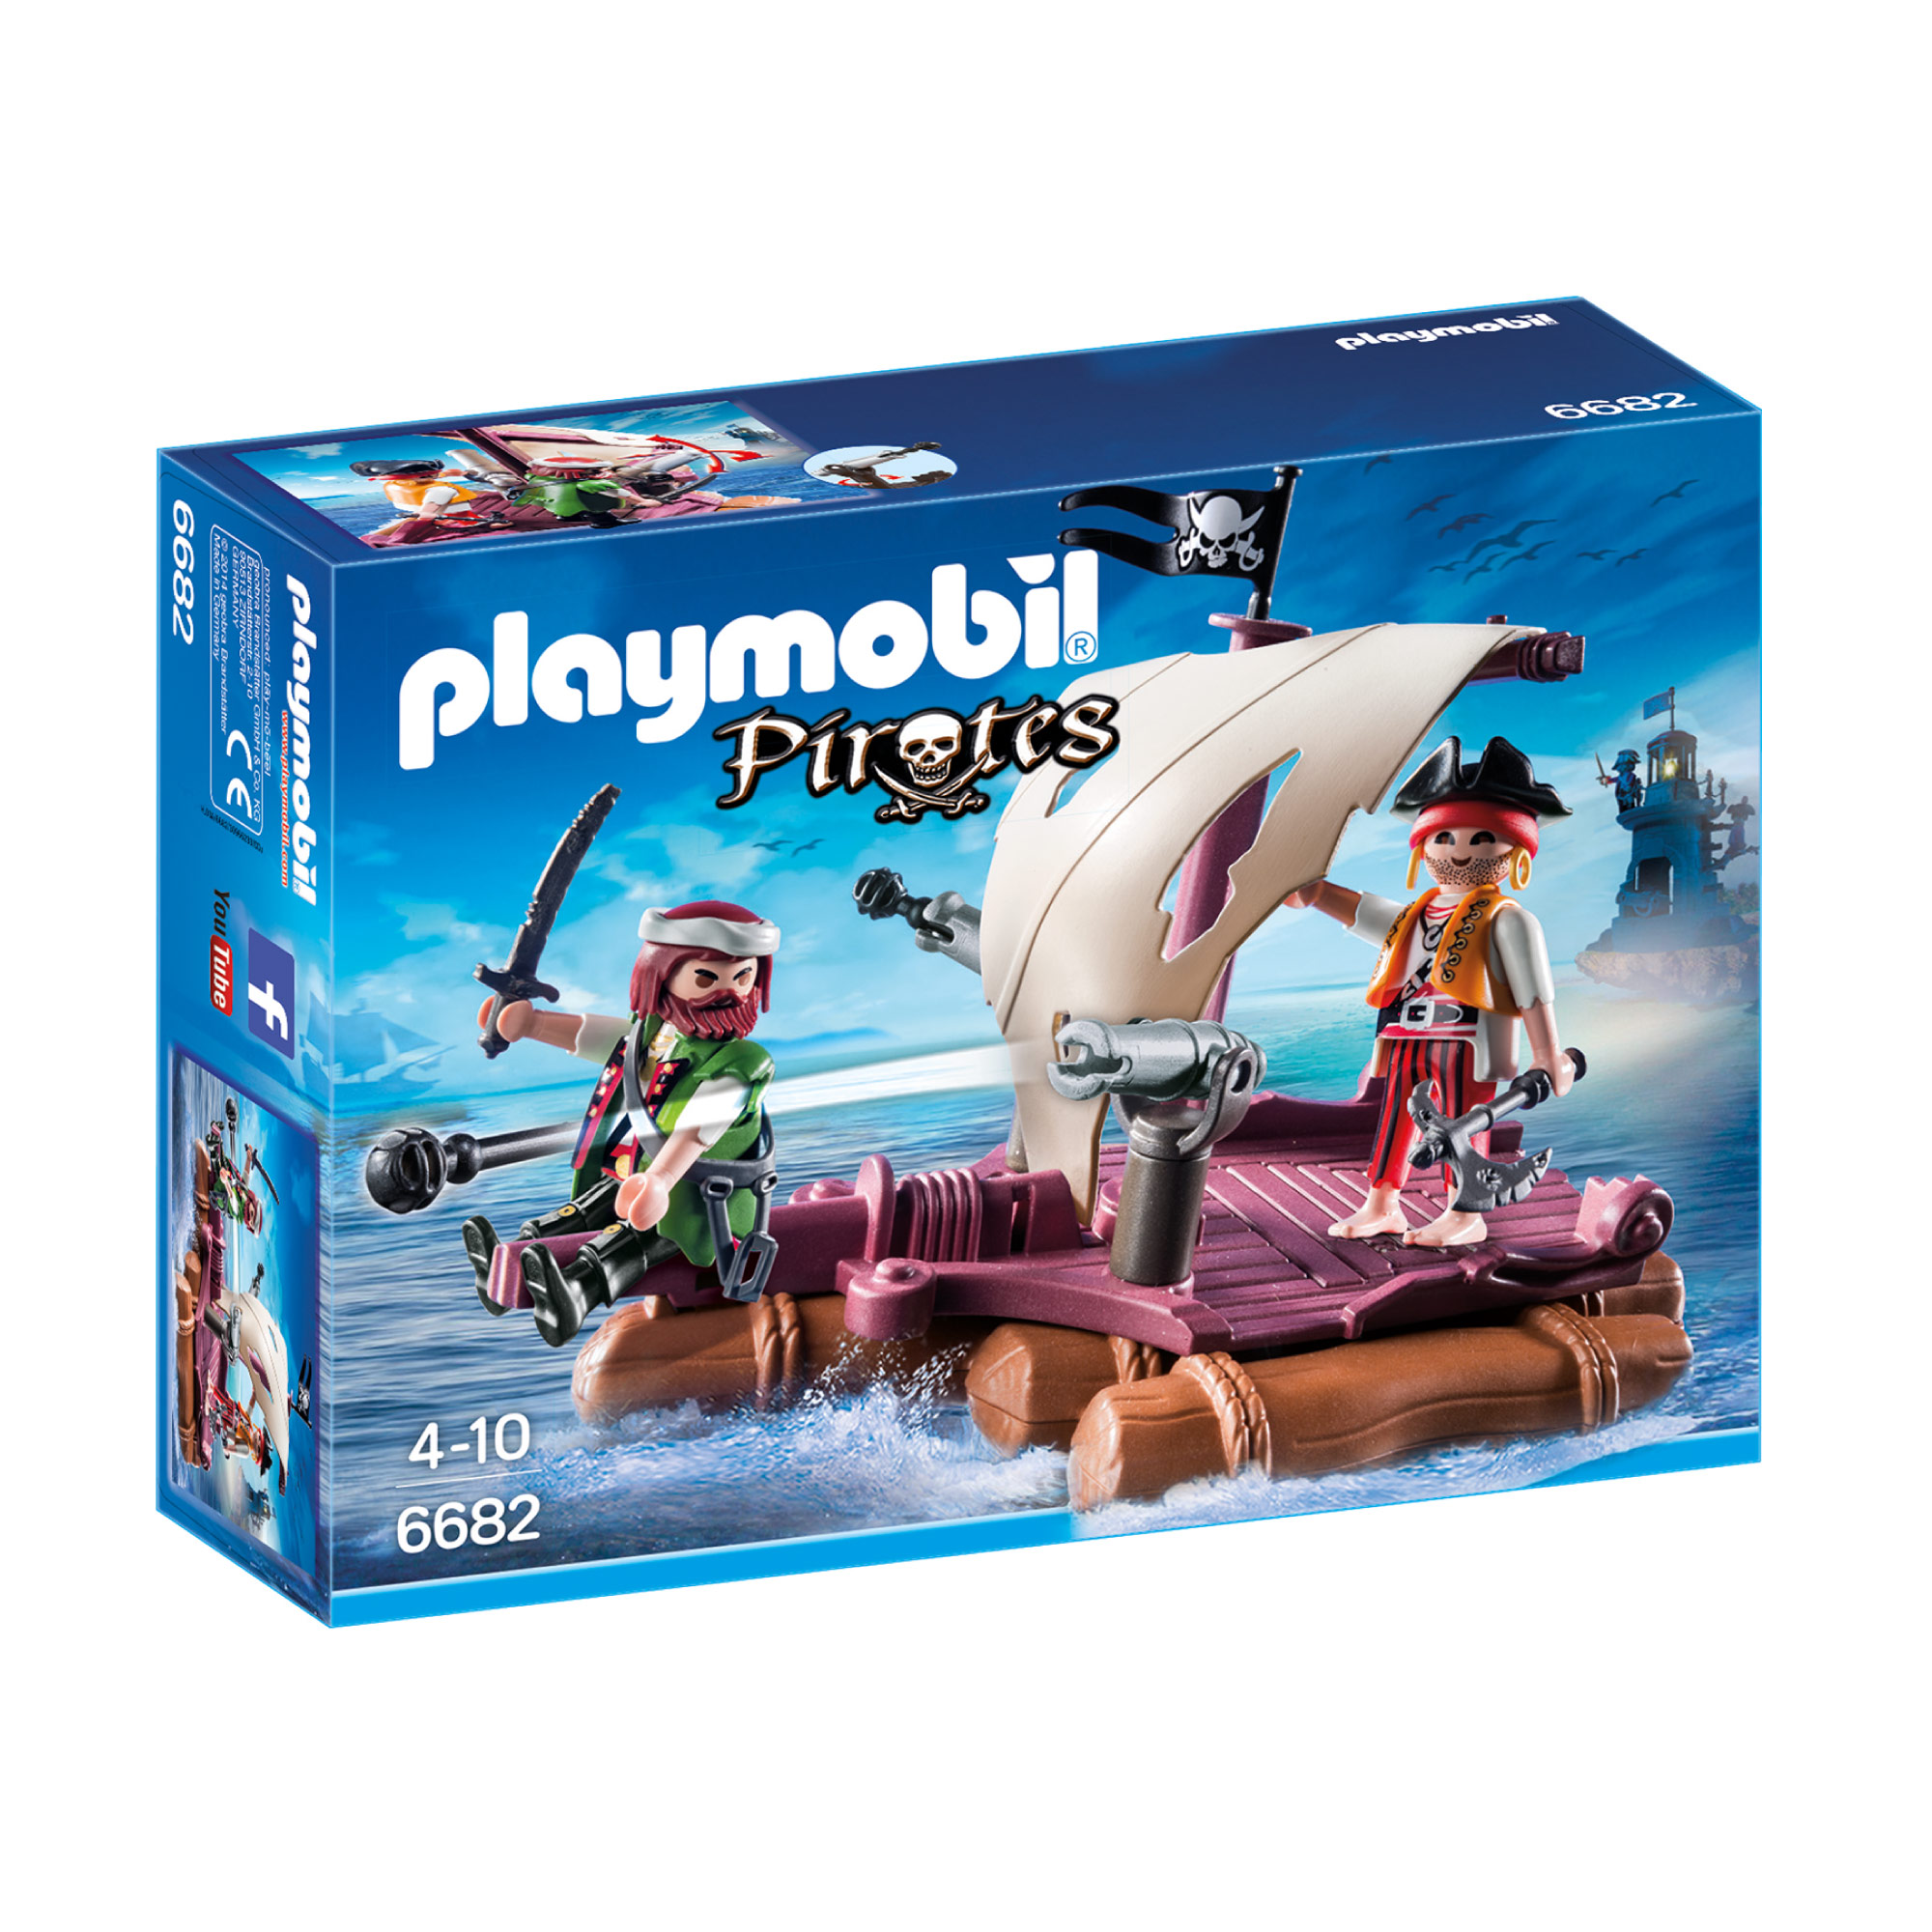 Playmobil Pirates Raft 6682